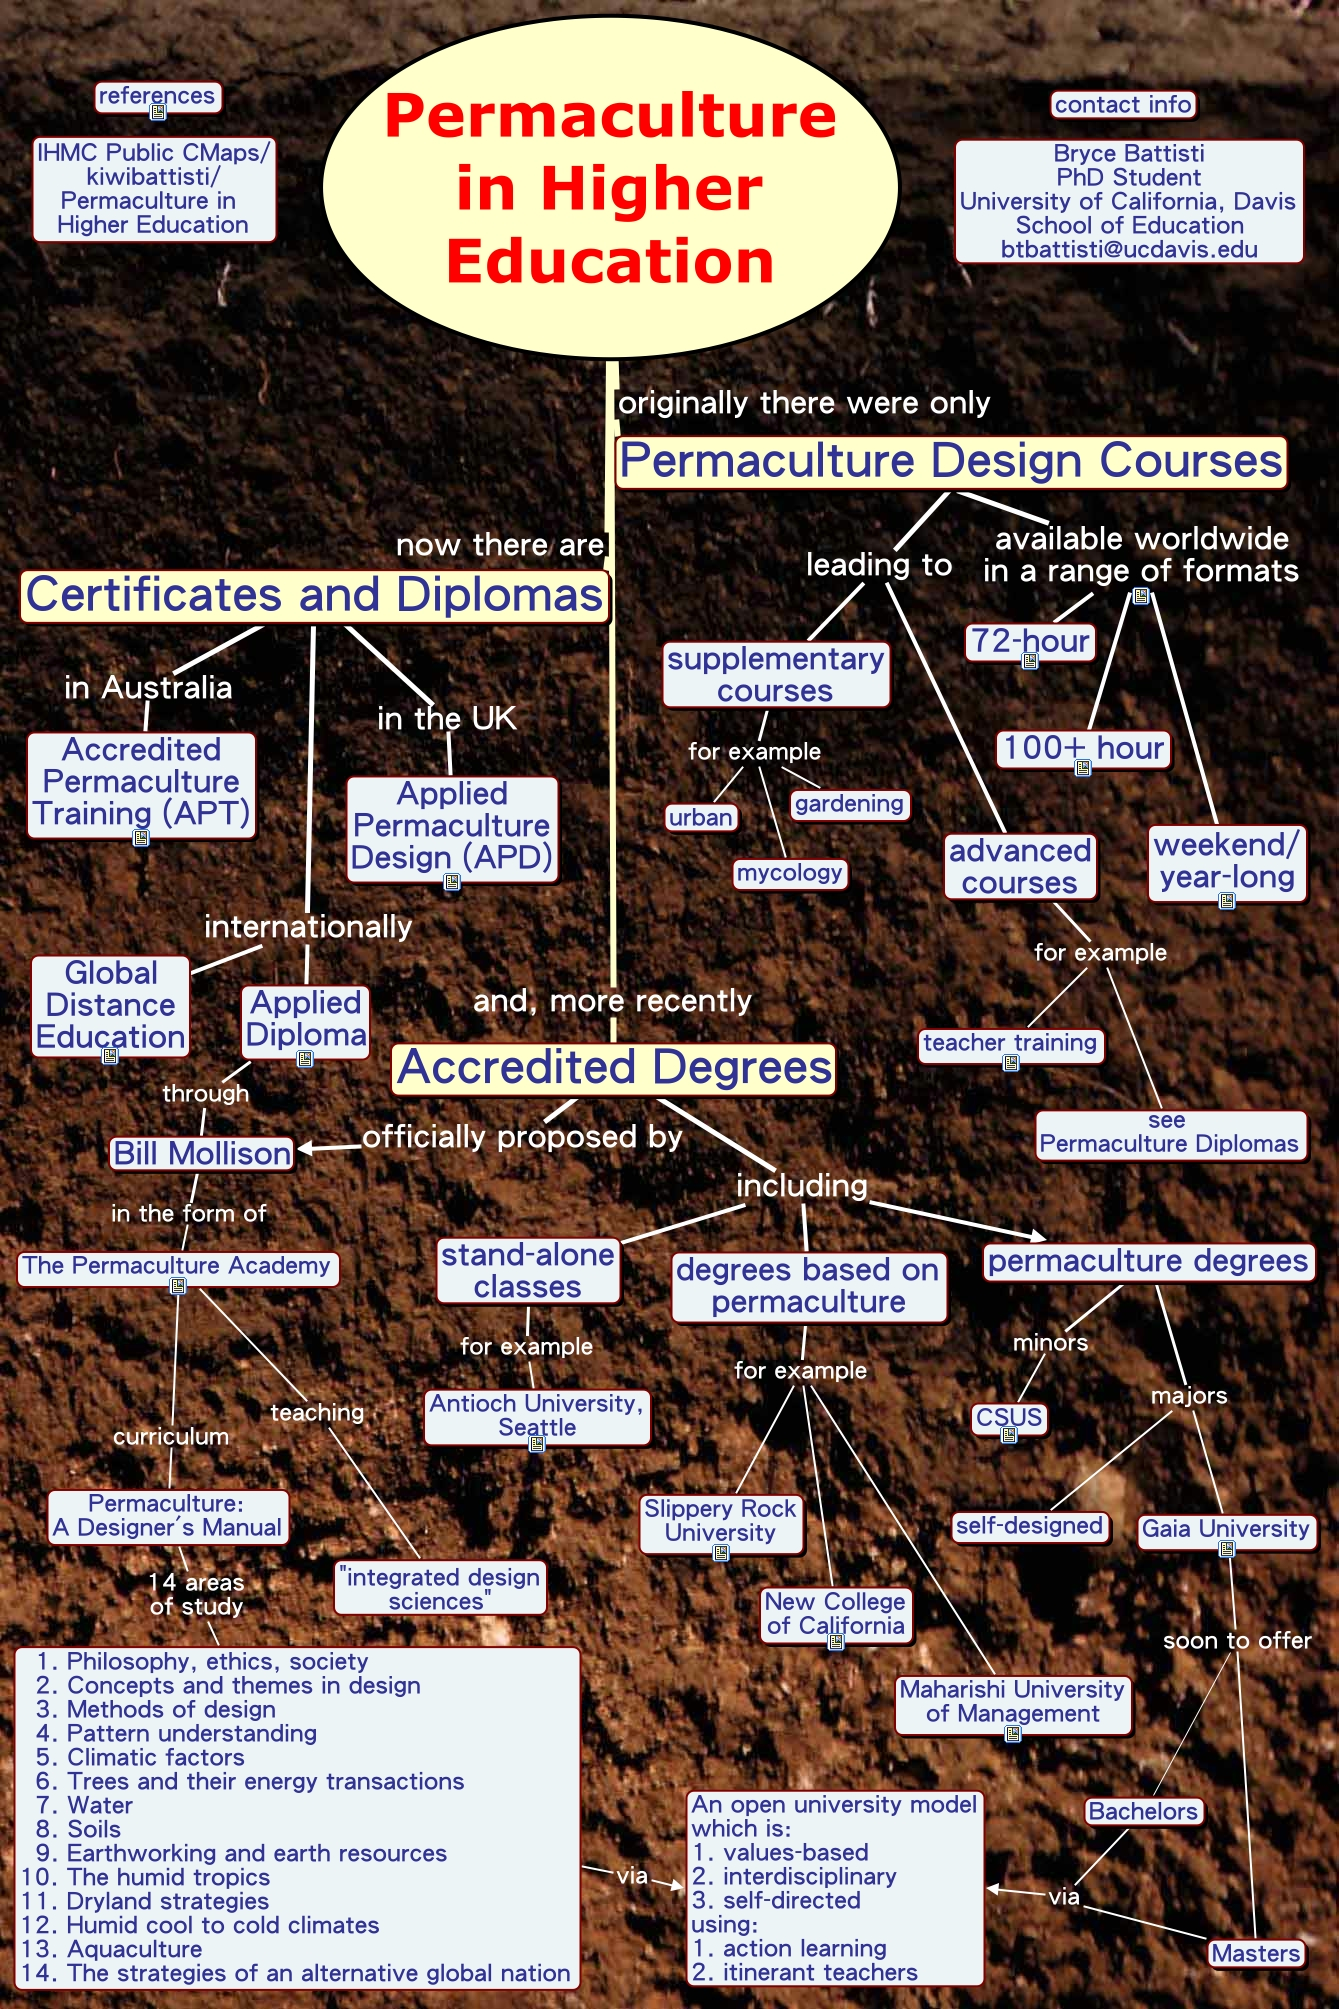 Permaculture Design Examples Google Search: Permaculture In Higher Education